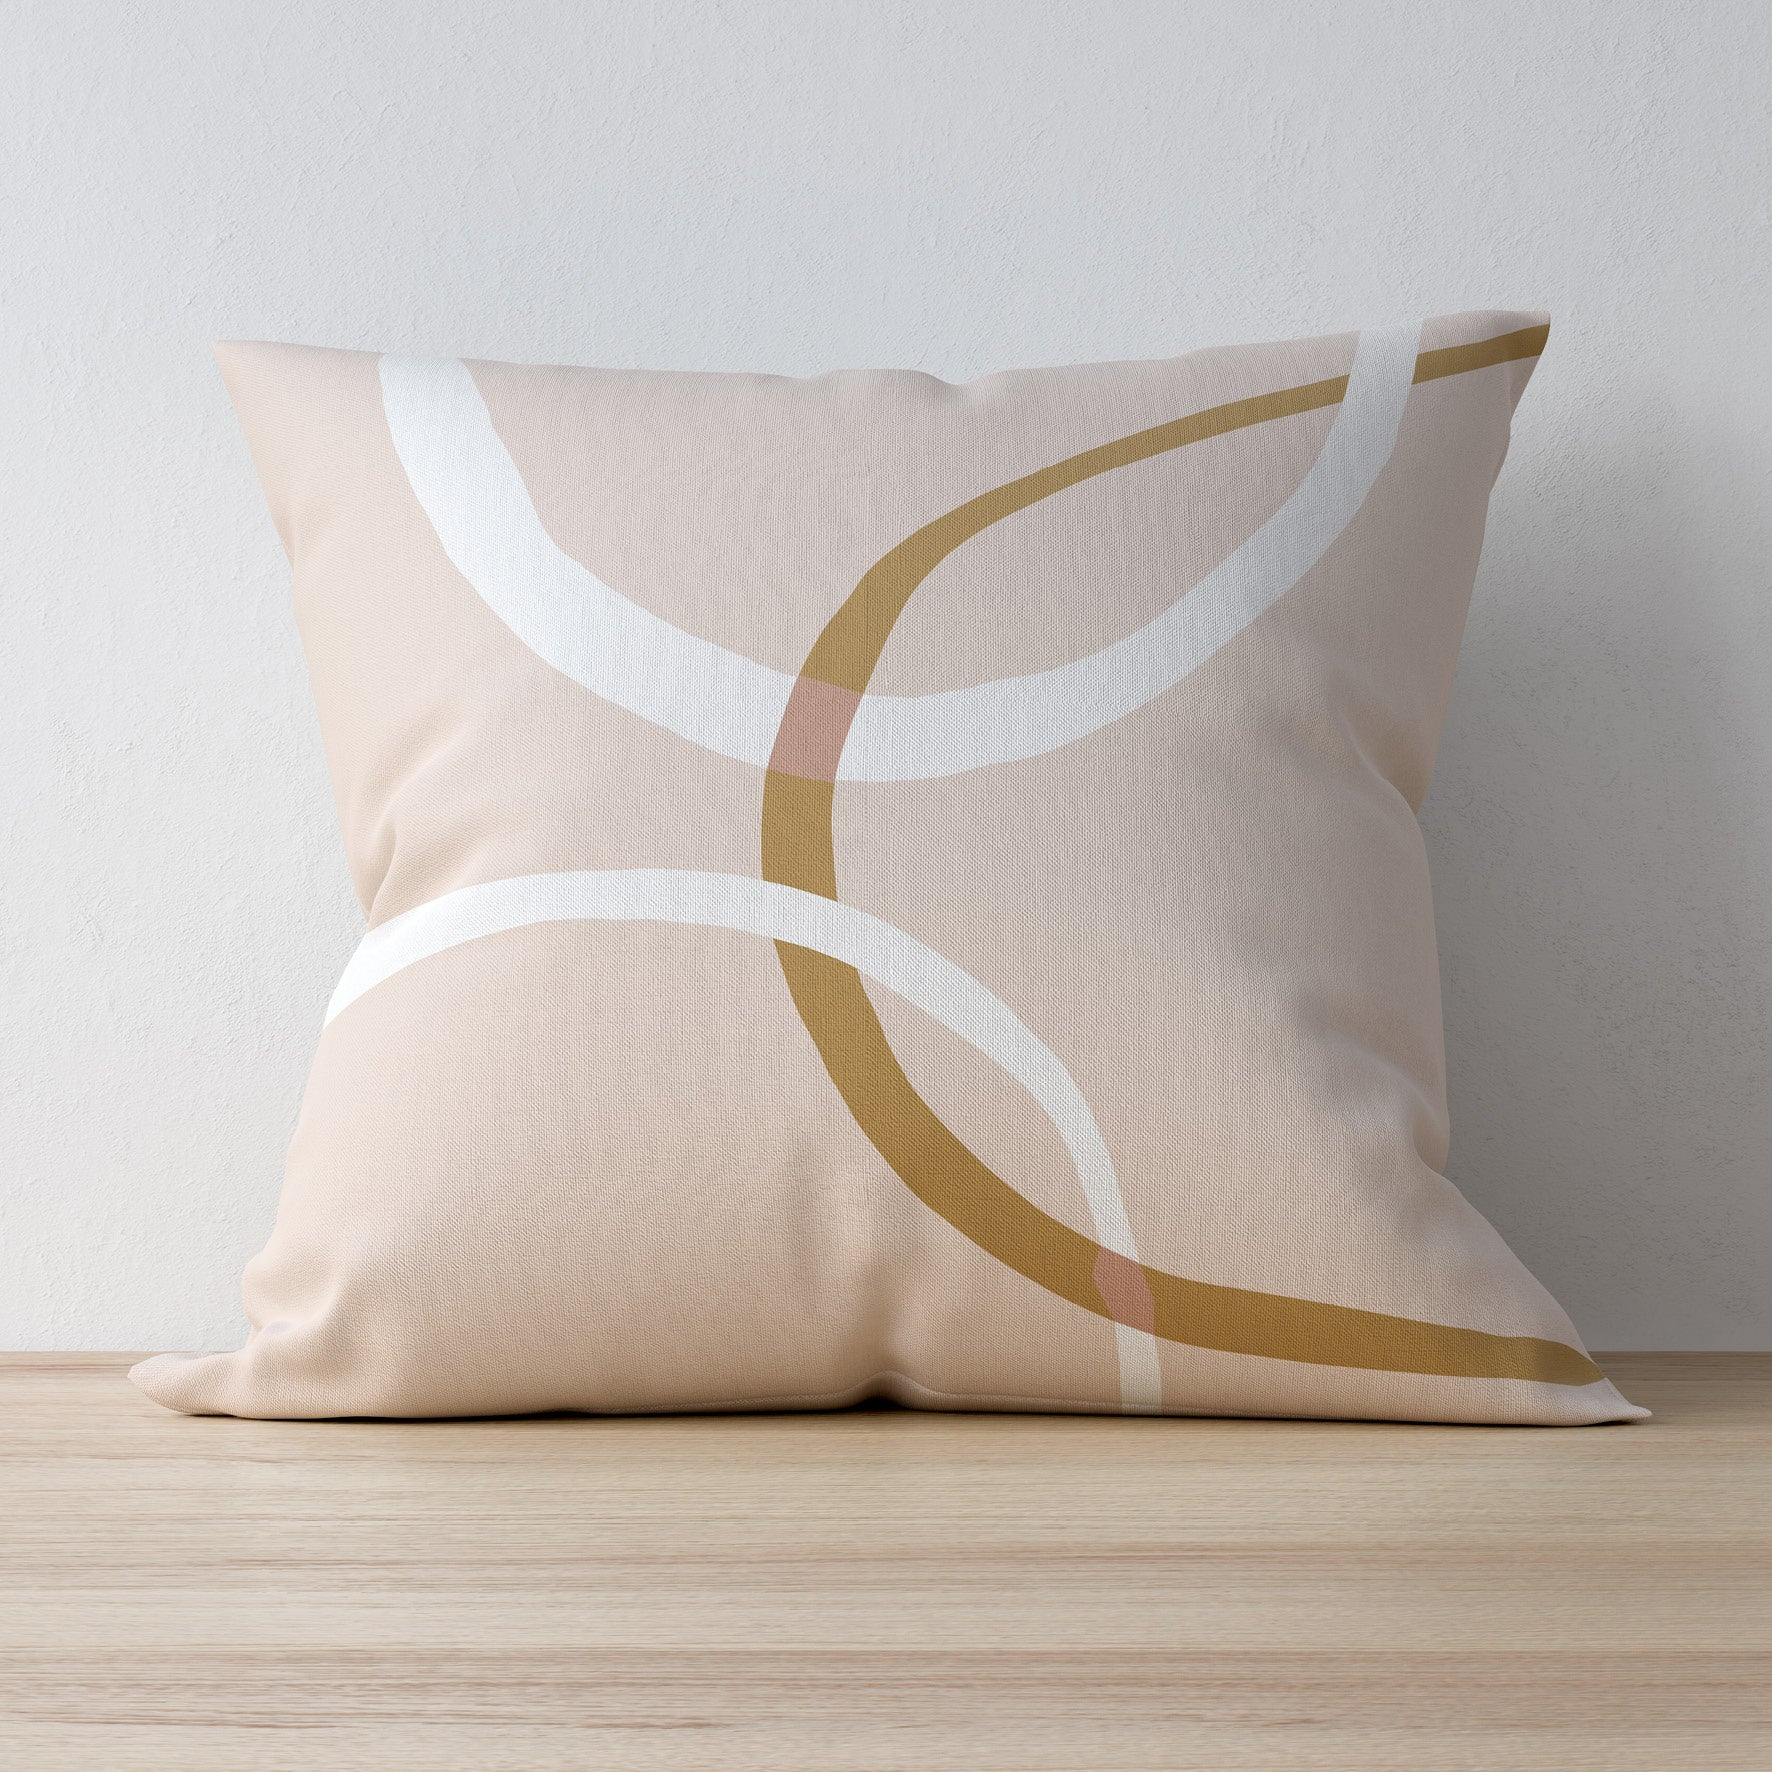 Becks Harrop - Printed One World Pillow Case